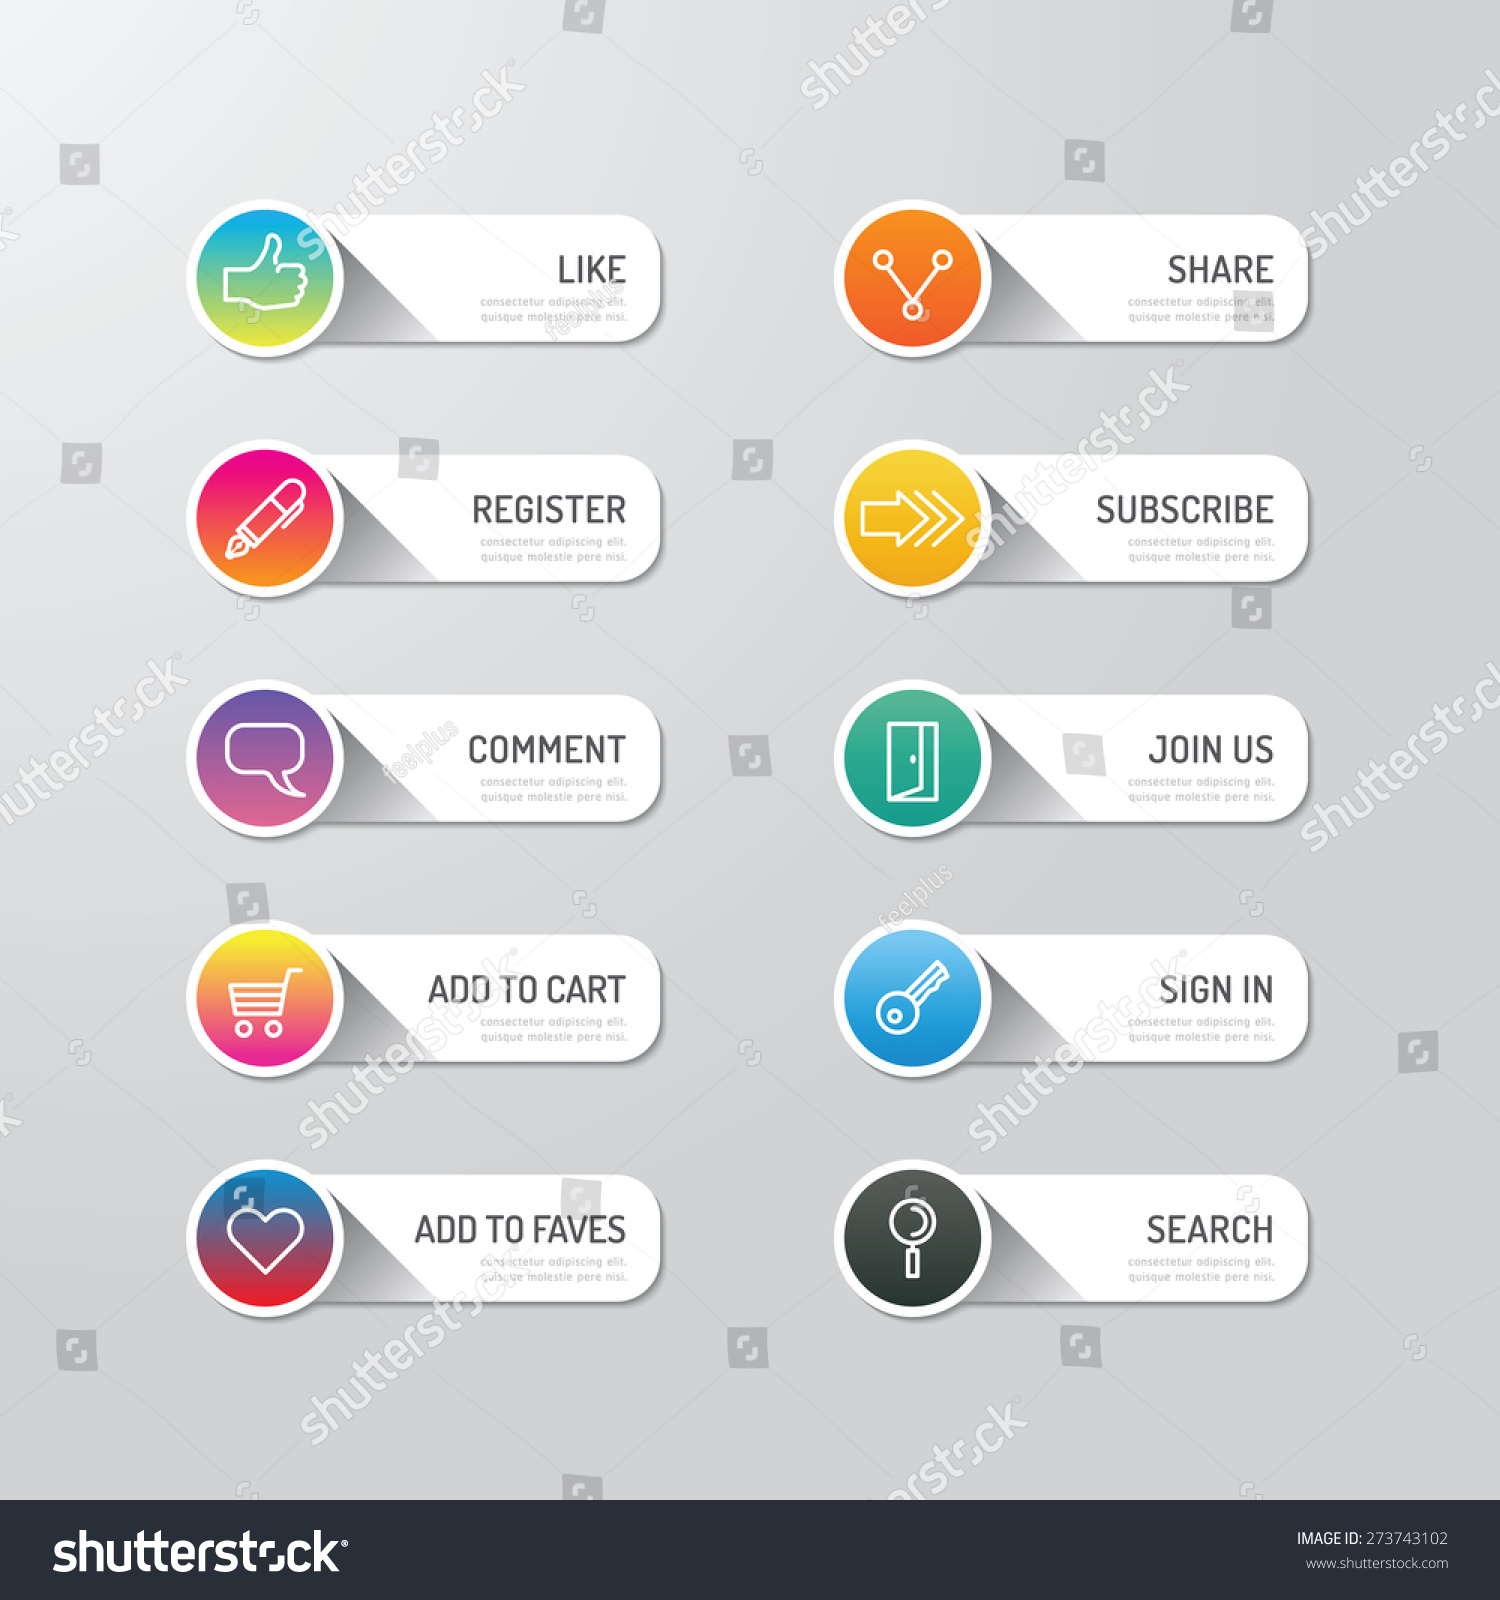 Modern banner button with social icon design options. Vector illustration. can be used for infographic workflow layout, banner, abstract, colour, graphic or website layout vector #273743102